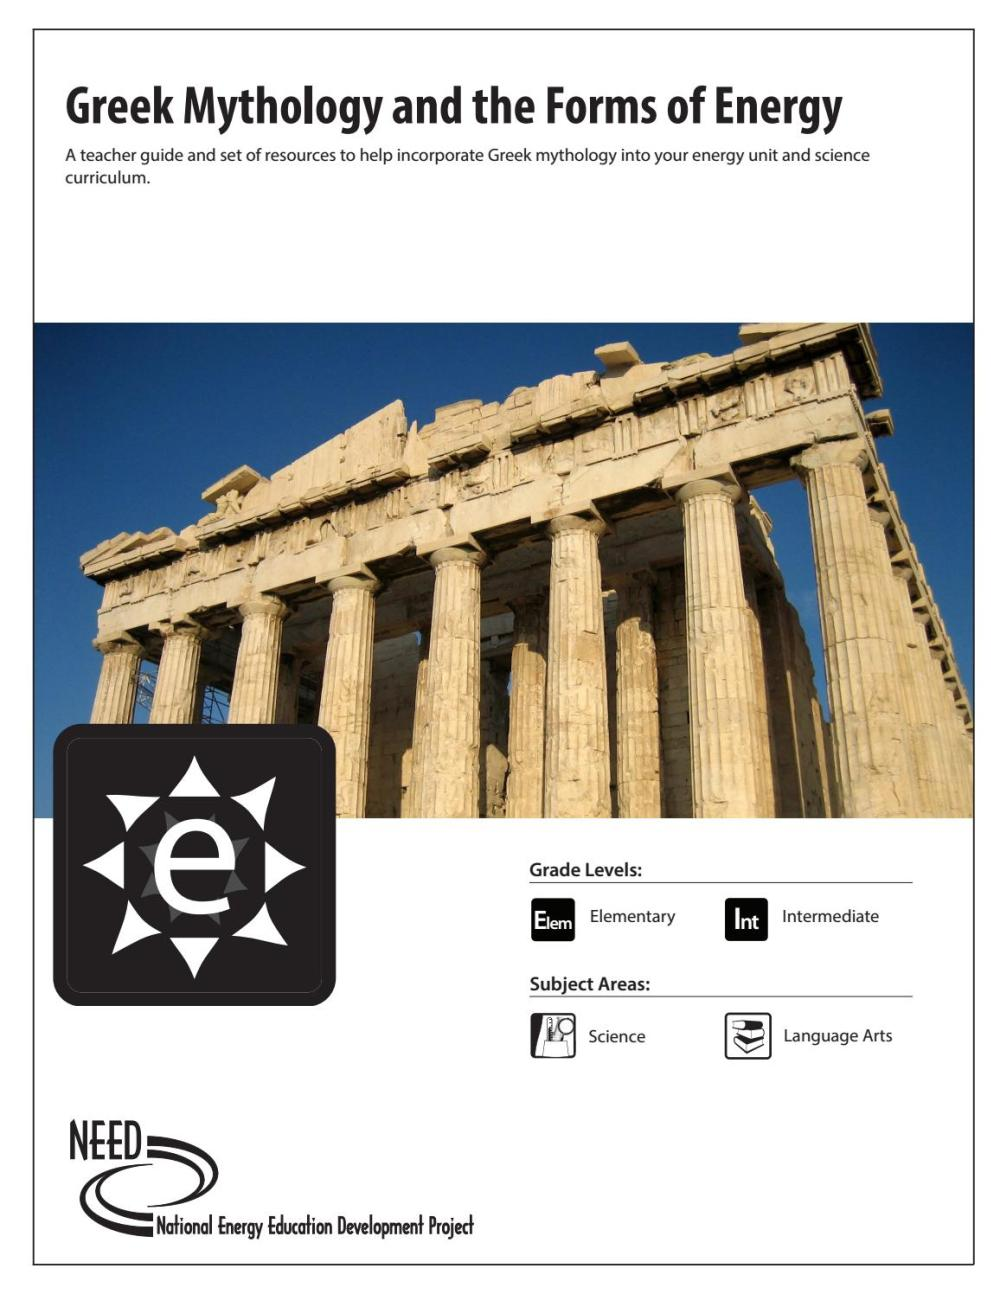 medium resolution of Greek Mythology and the Forms of Energy by NEED Project - issuu